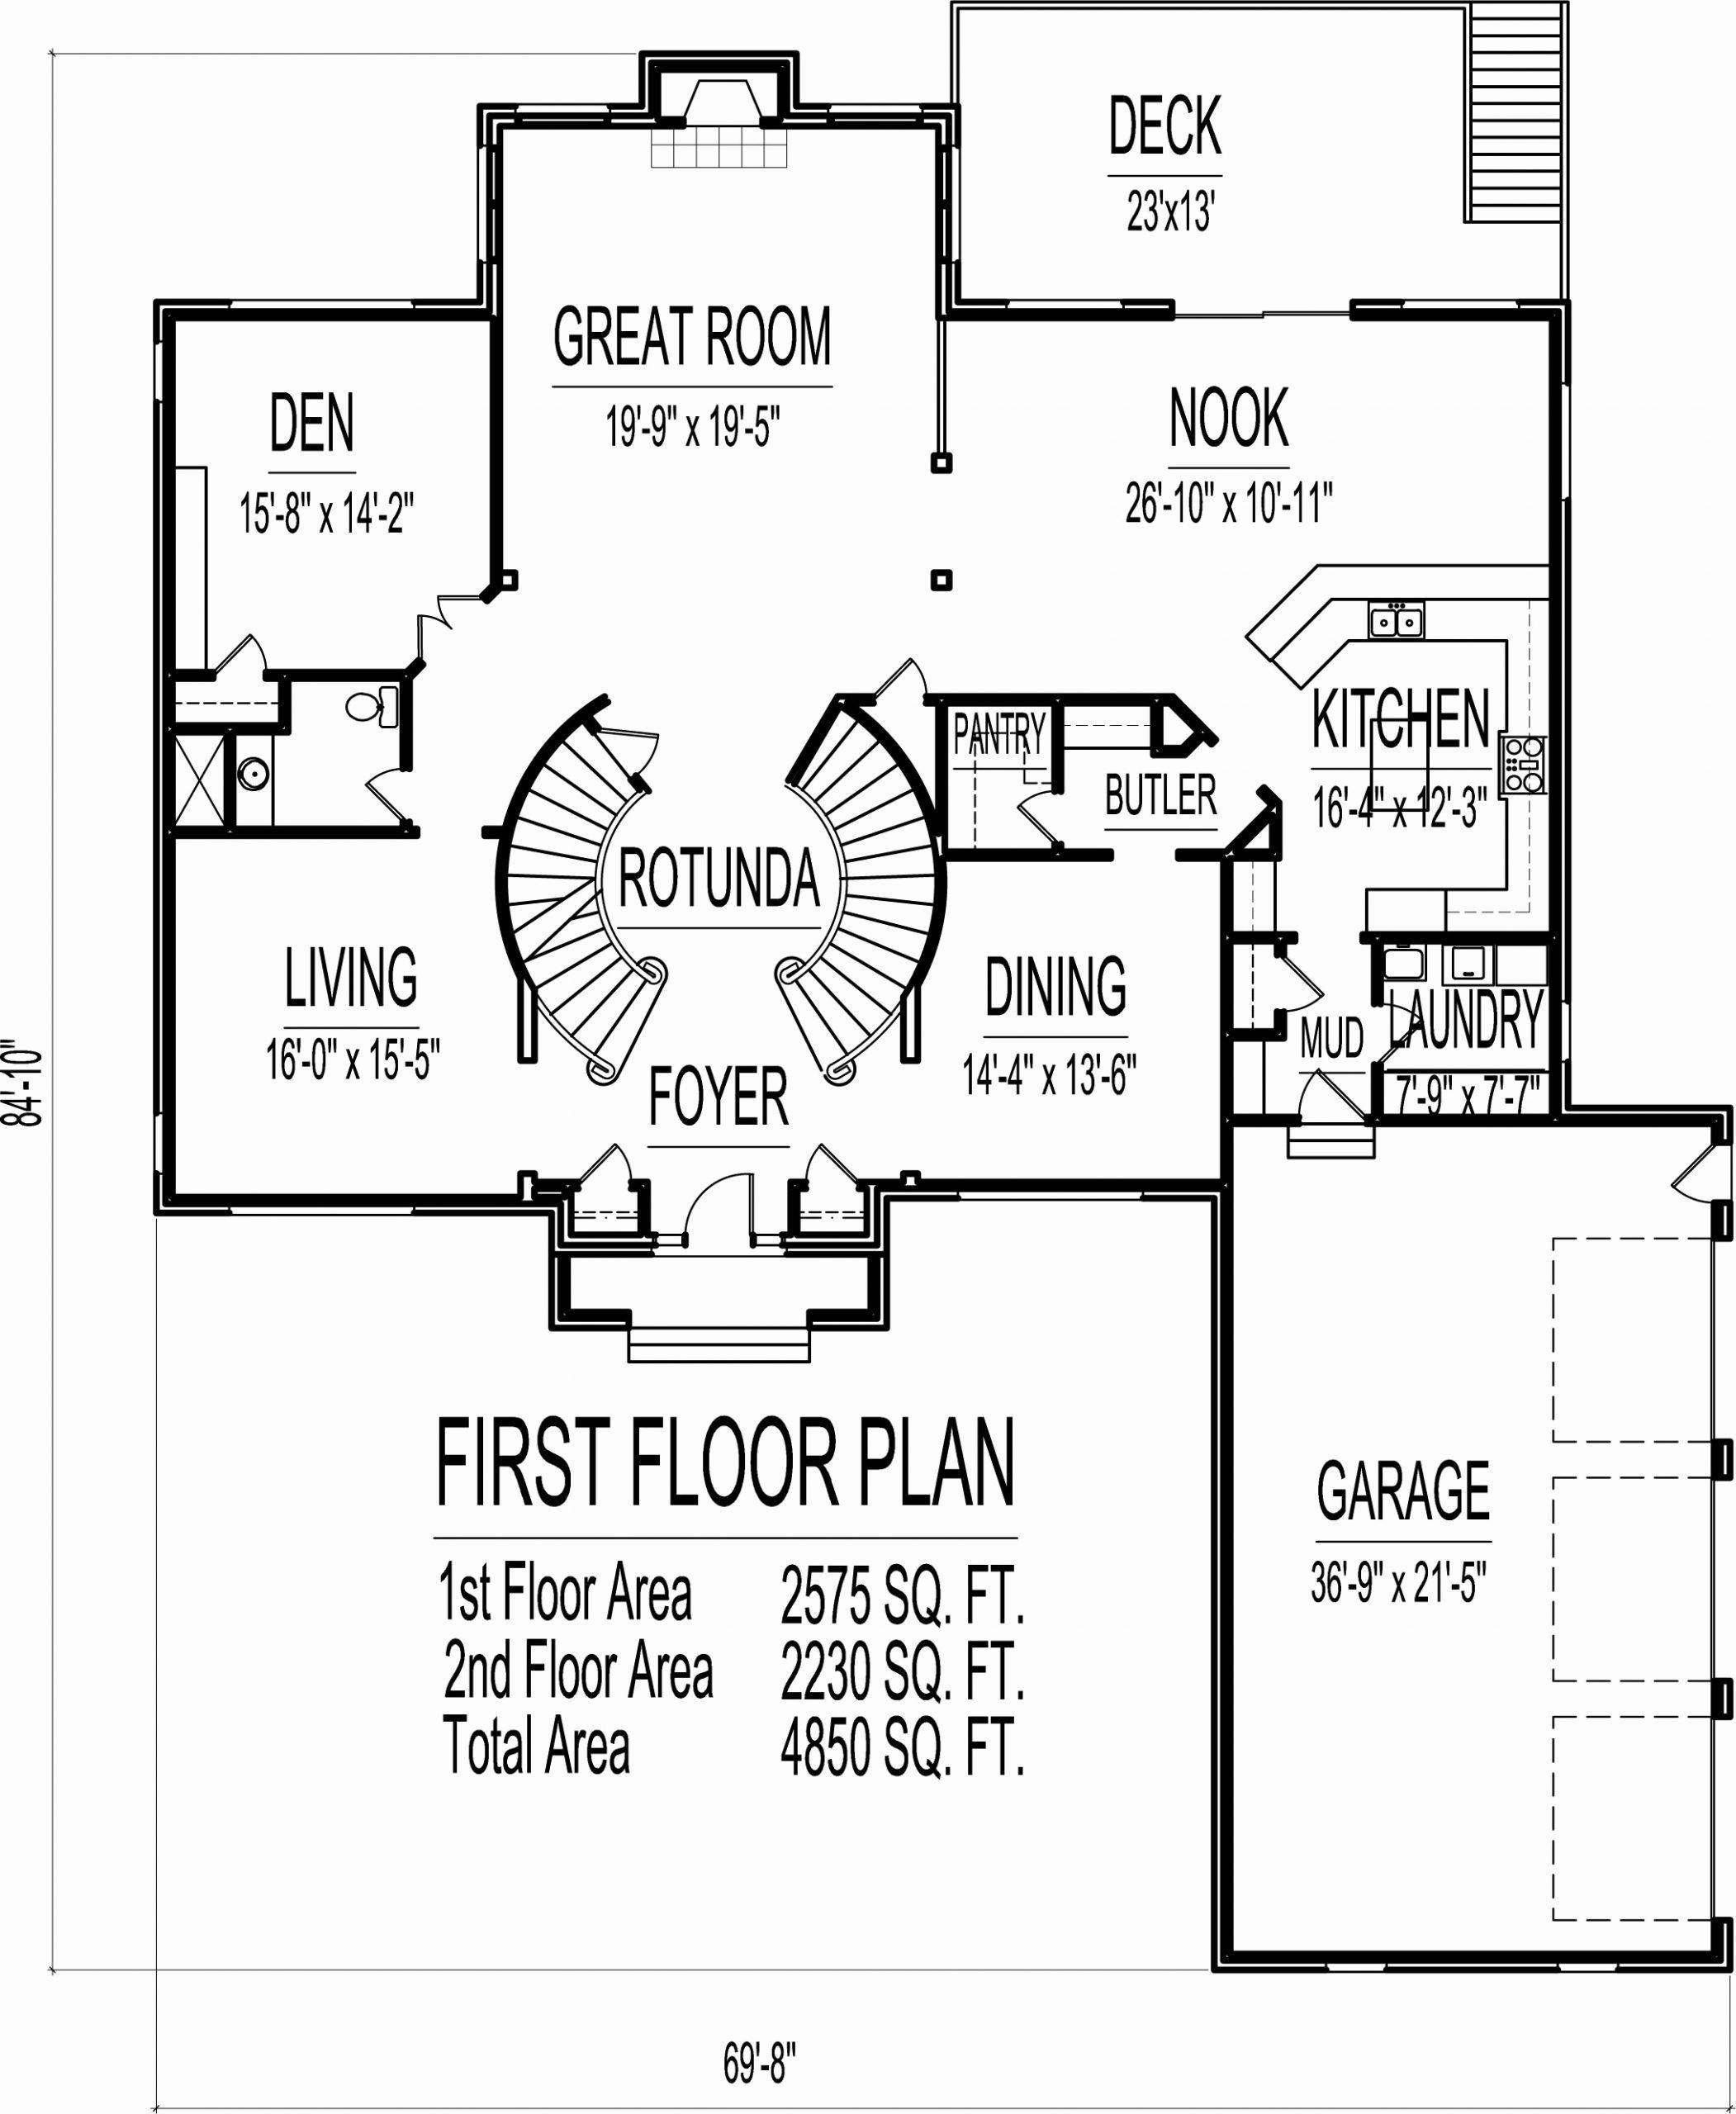 10000 Sq Ft House Plans Unique 4500 Square Foot House Floor Plans 5 Bedroom 2 Story Double In 2020 House Floor Plans House Plans Bungalow House Floor Plans